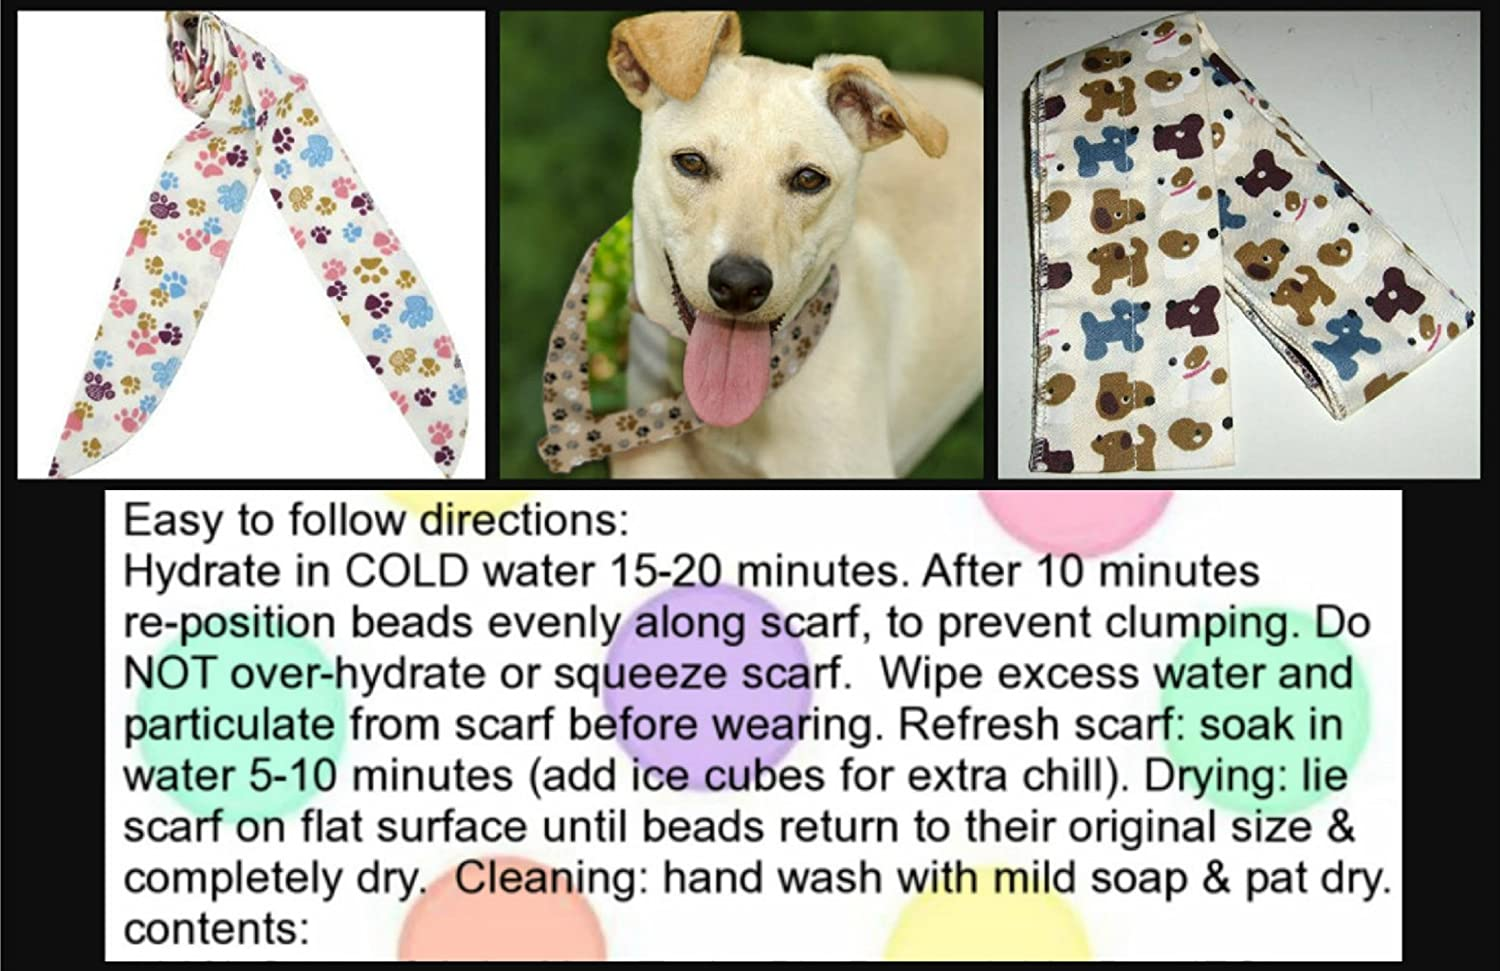 JellyBeadZ Brand - 2 PACK - Neck Cooling Scarf Wrap, Keep You Cool Bandana - 2 Cute Doggy Print Patterns